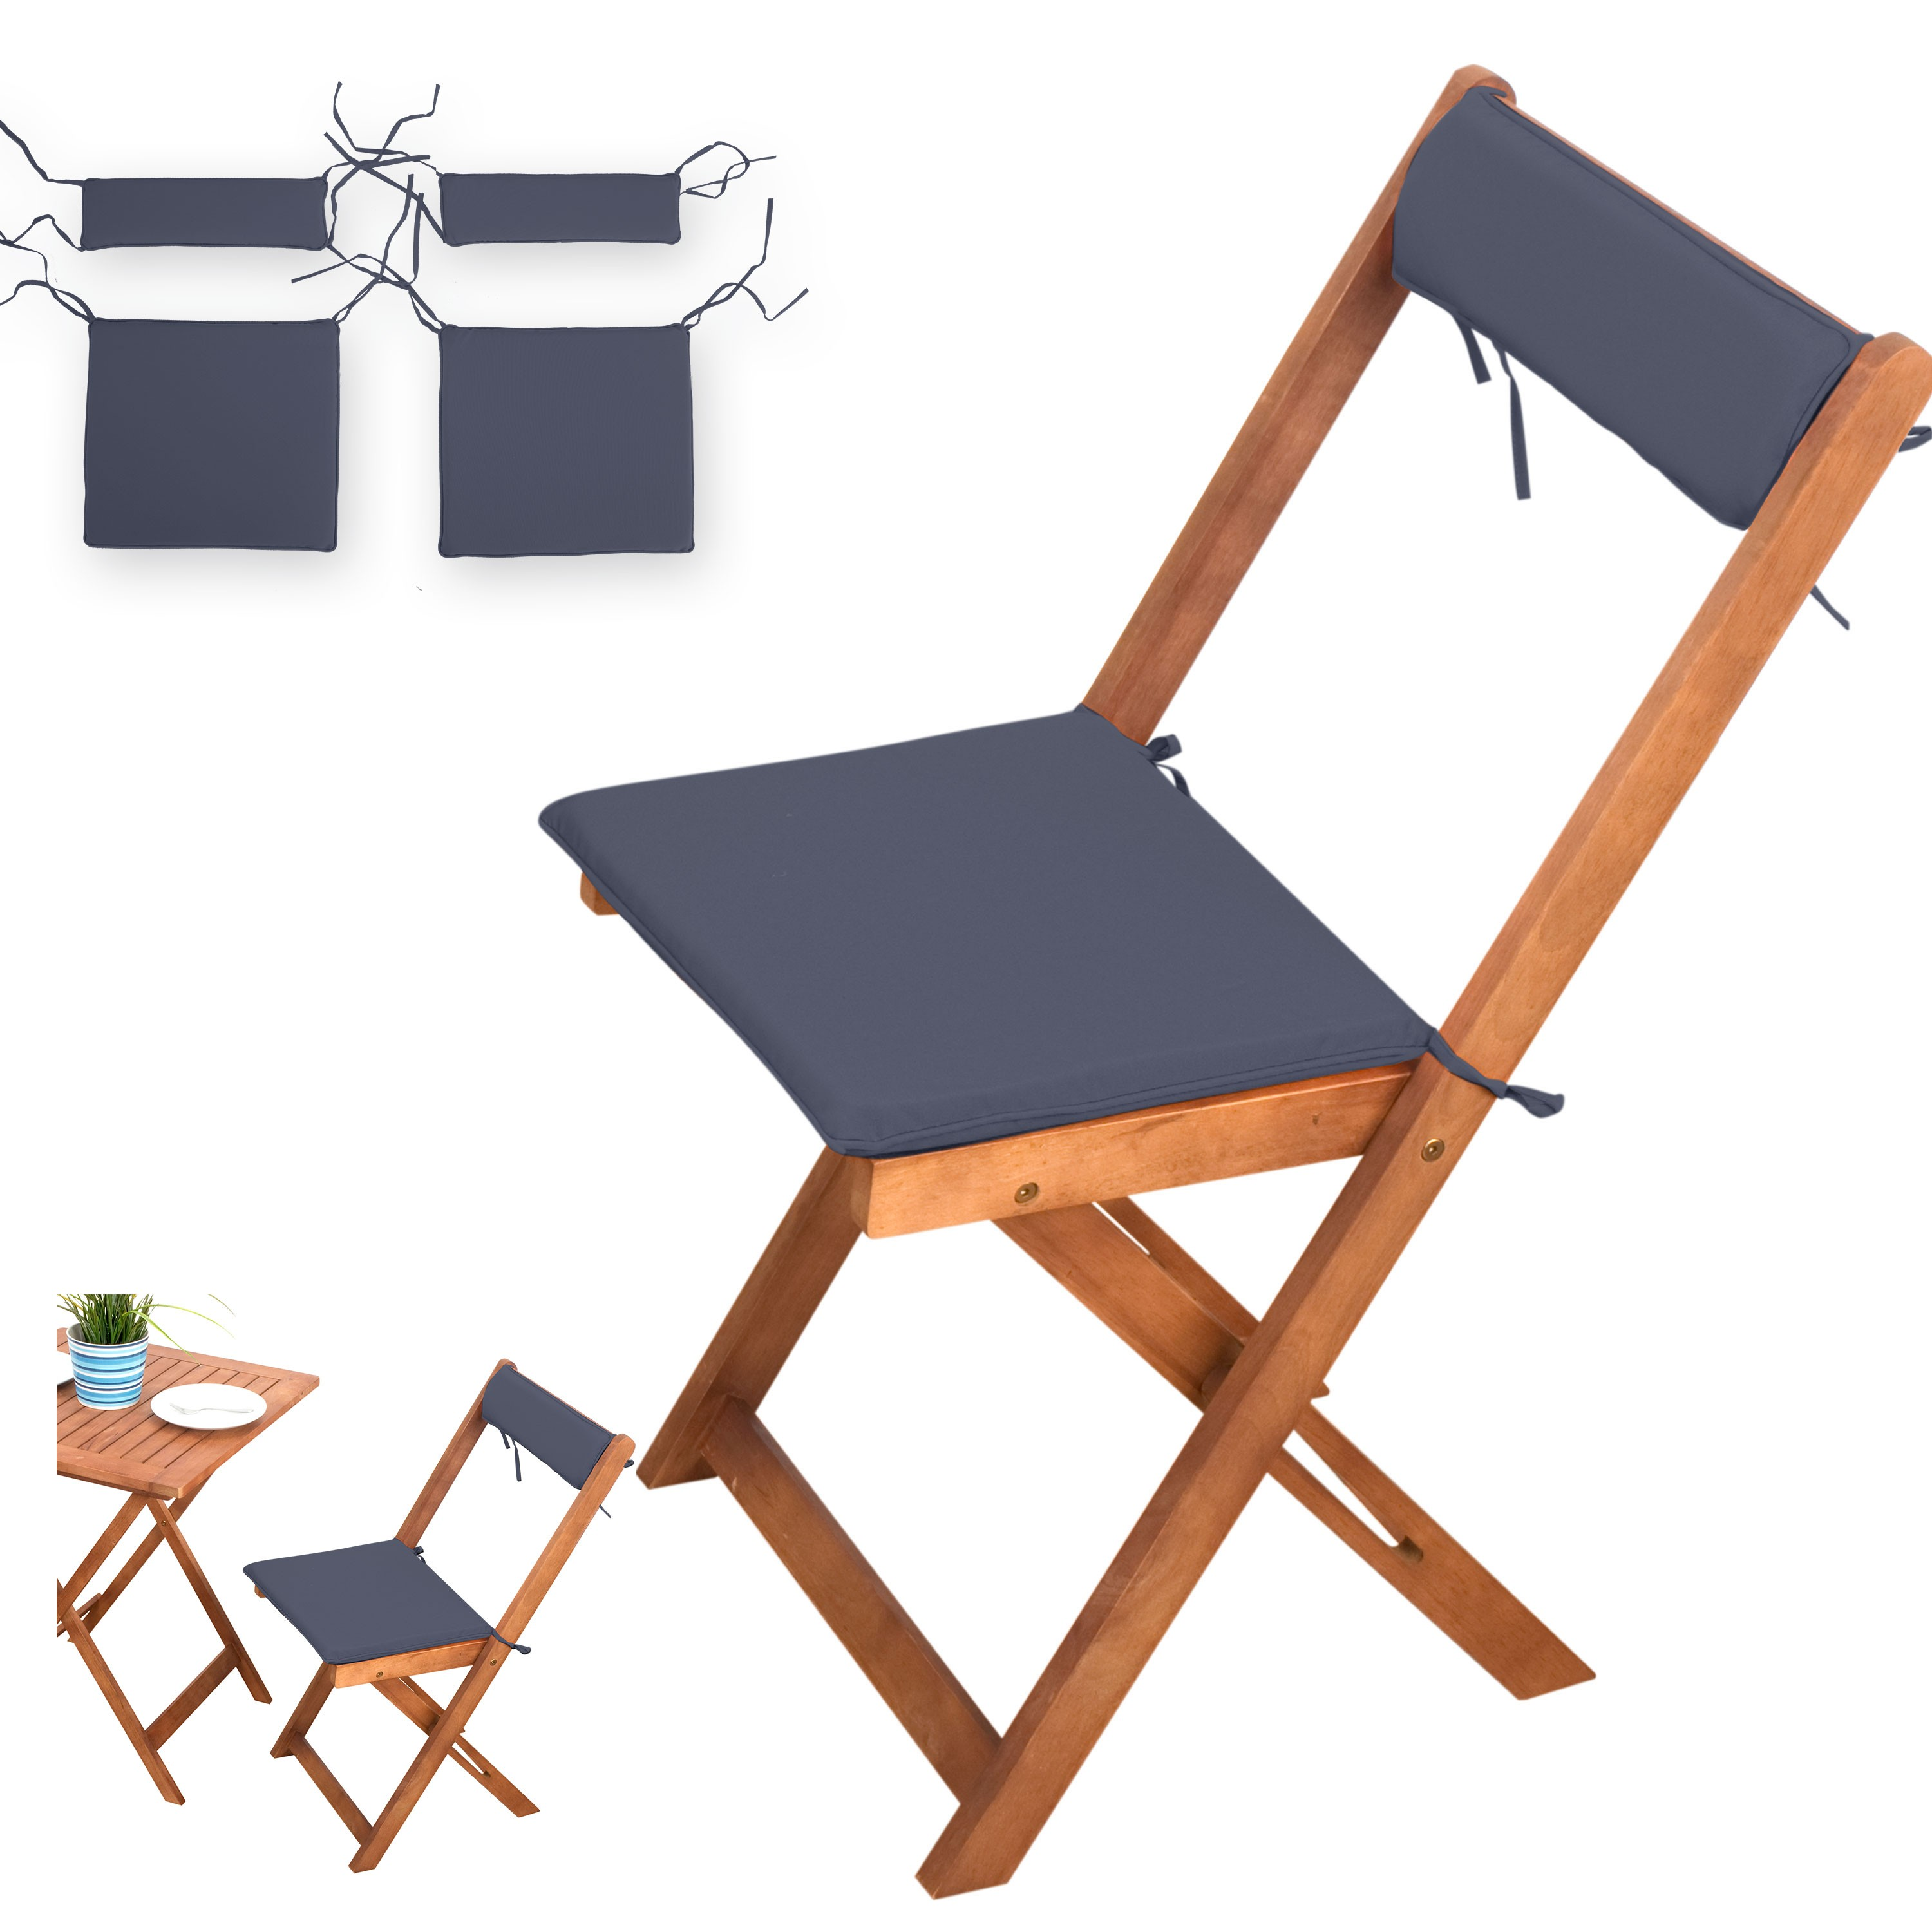 balkon set auflagen auflagen xinro onlineshop. Black Bedroom Furniture Sets. Home Design Ideas